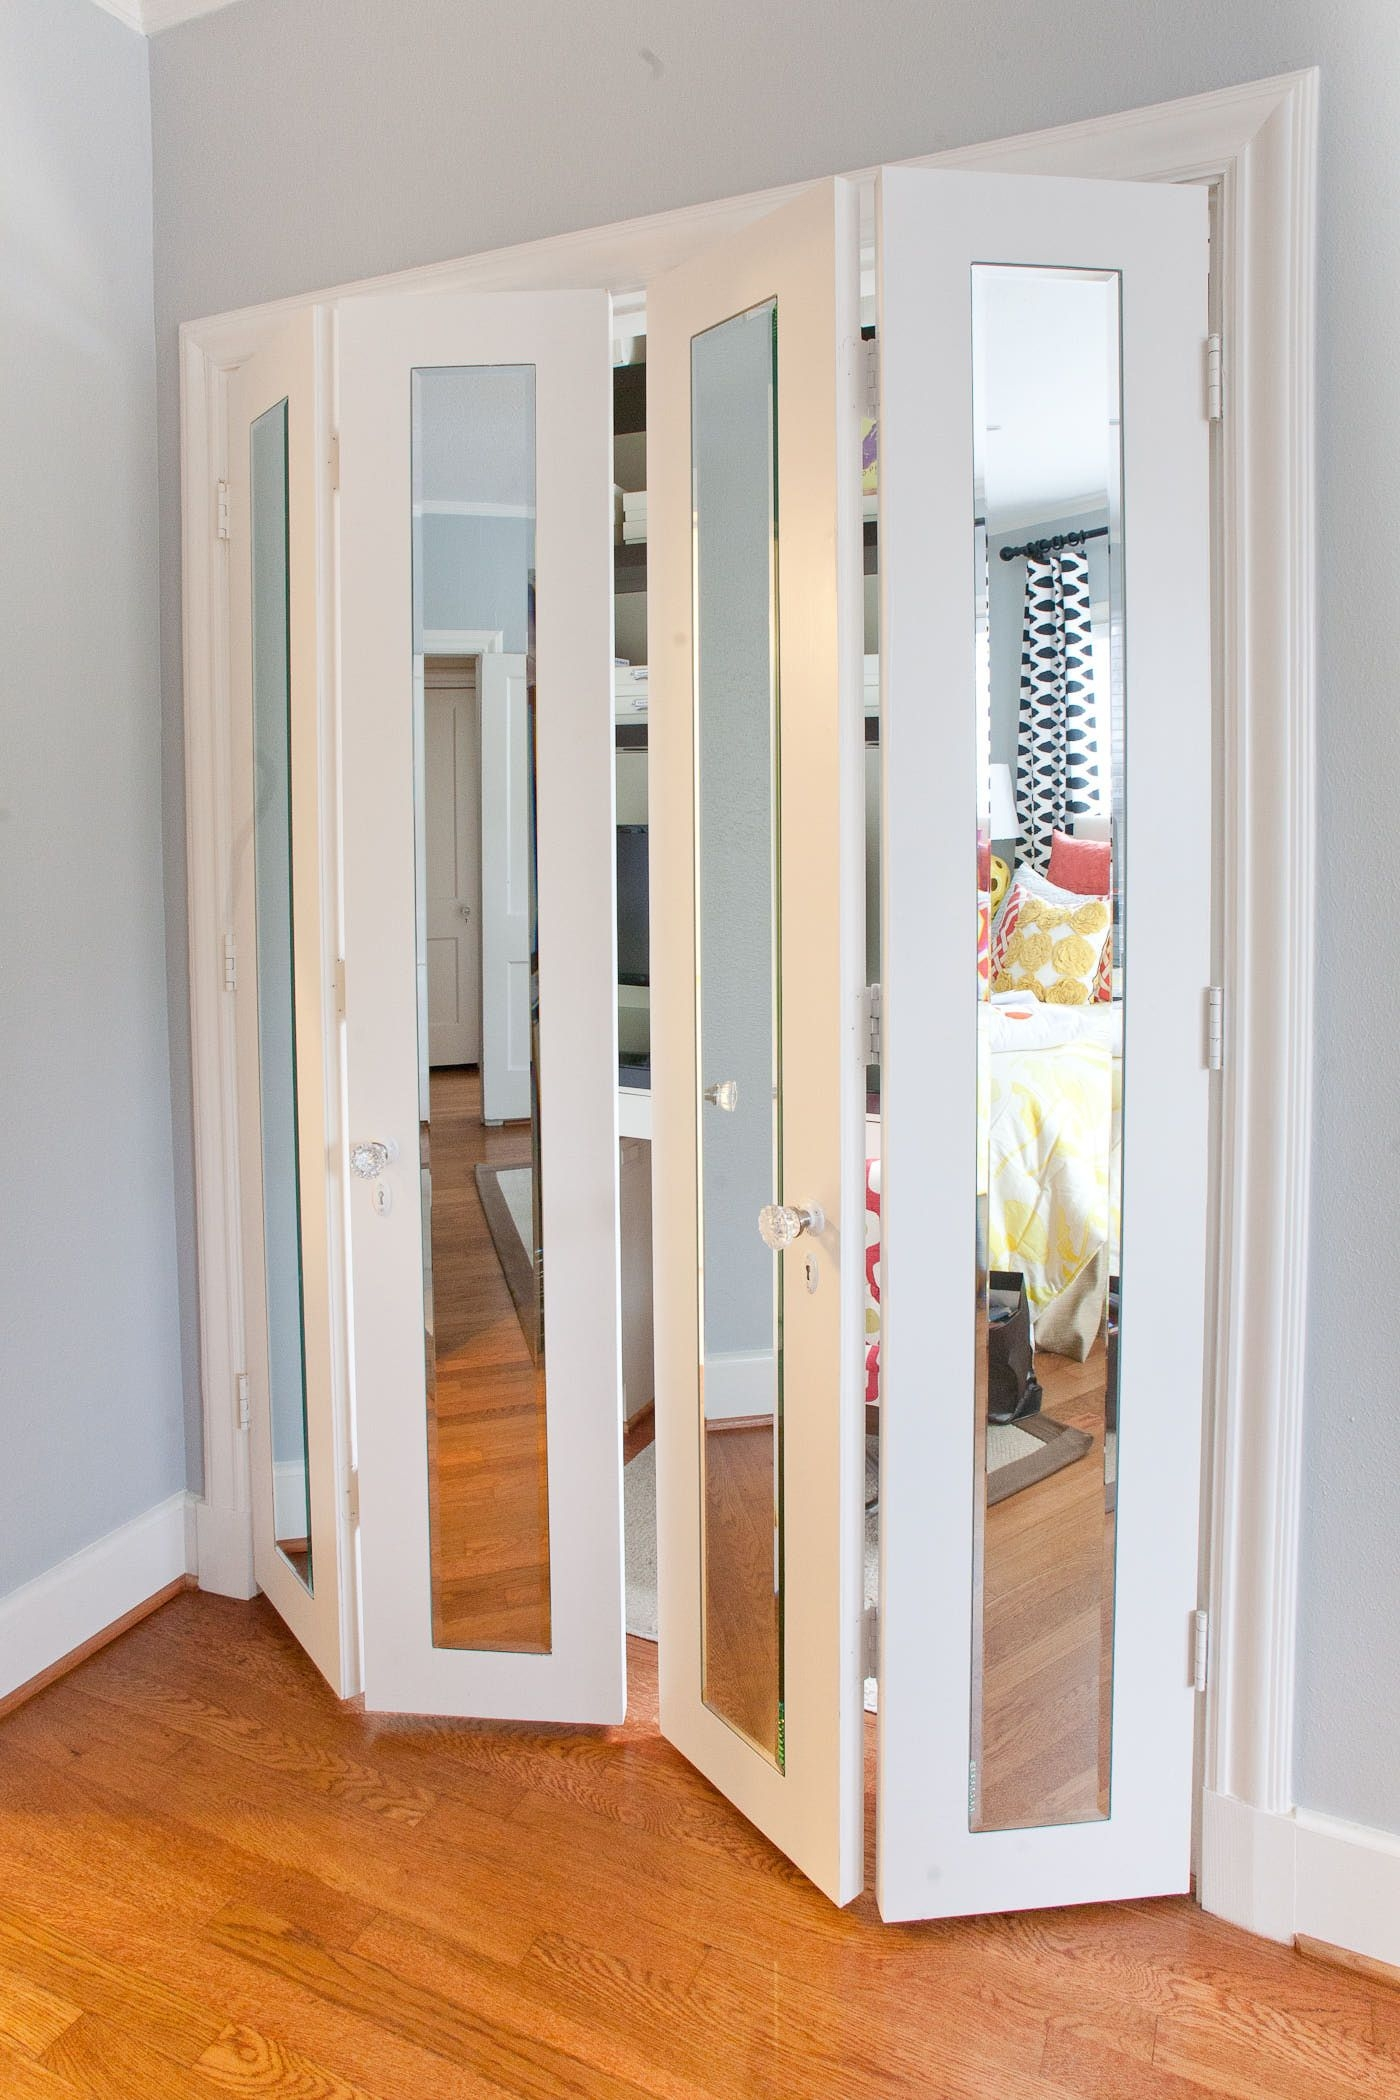 Sliding Closet Doors Vs Bifold